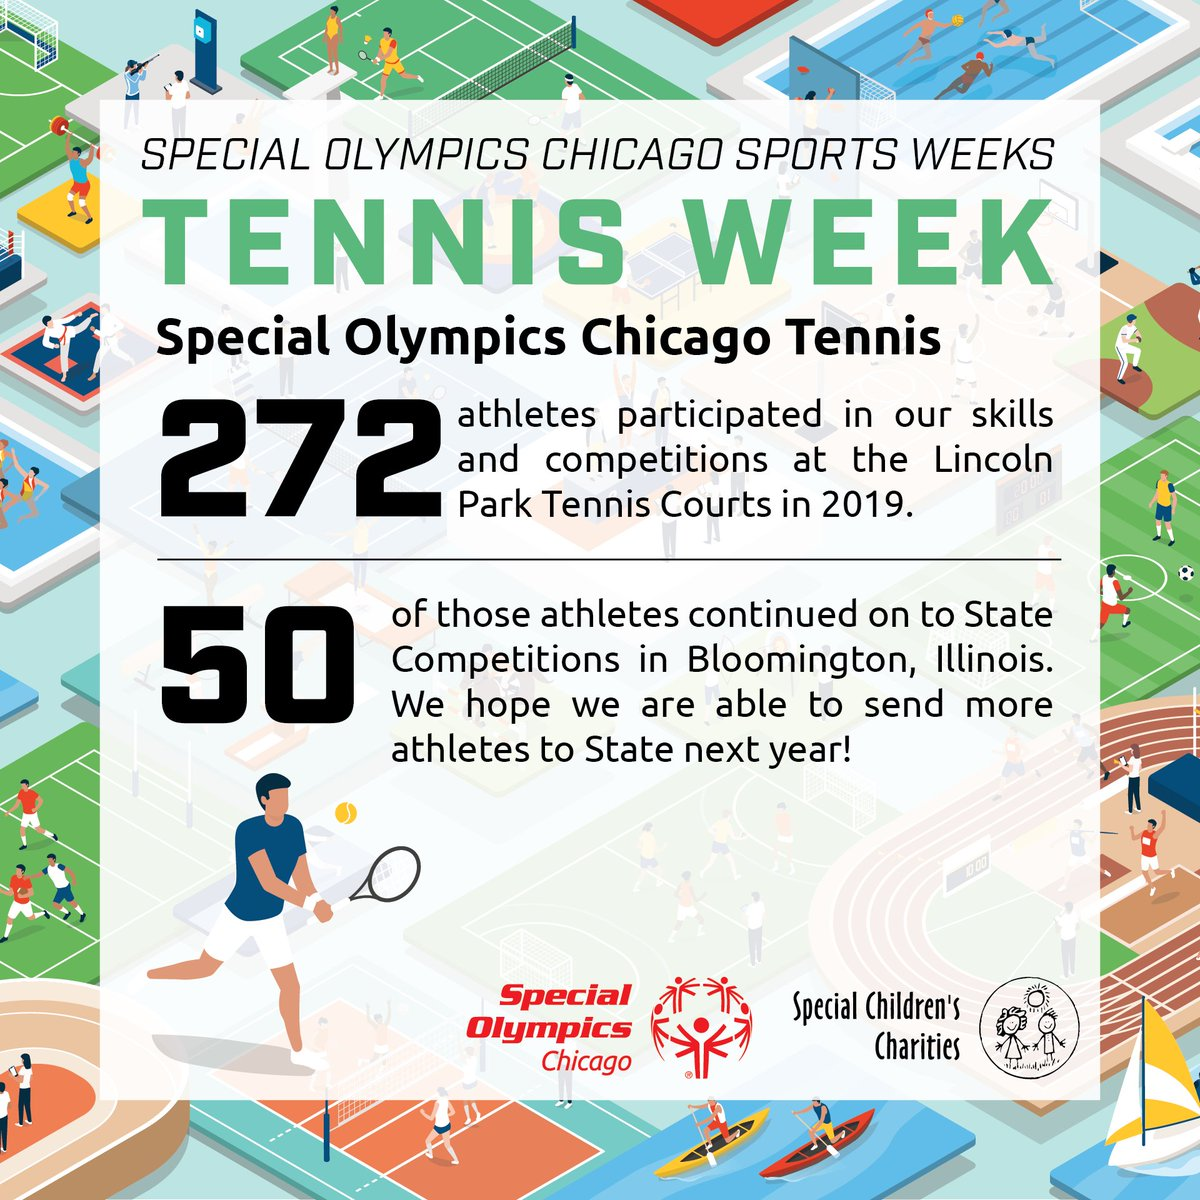 272 athletes participated in our skills and competitions at the Lincoln Park Tennis Courts in 2019. 50 of those athletes continued on to State Competitions in Bloomington, Illinois. We hope we are able to send more athletes to State next year! https://t.co/cZOt8hVupd